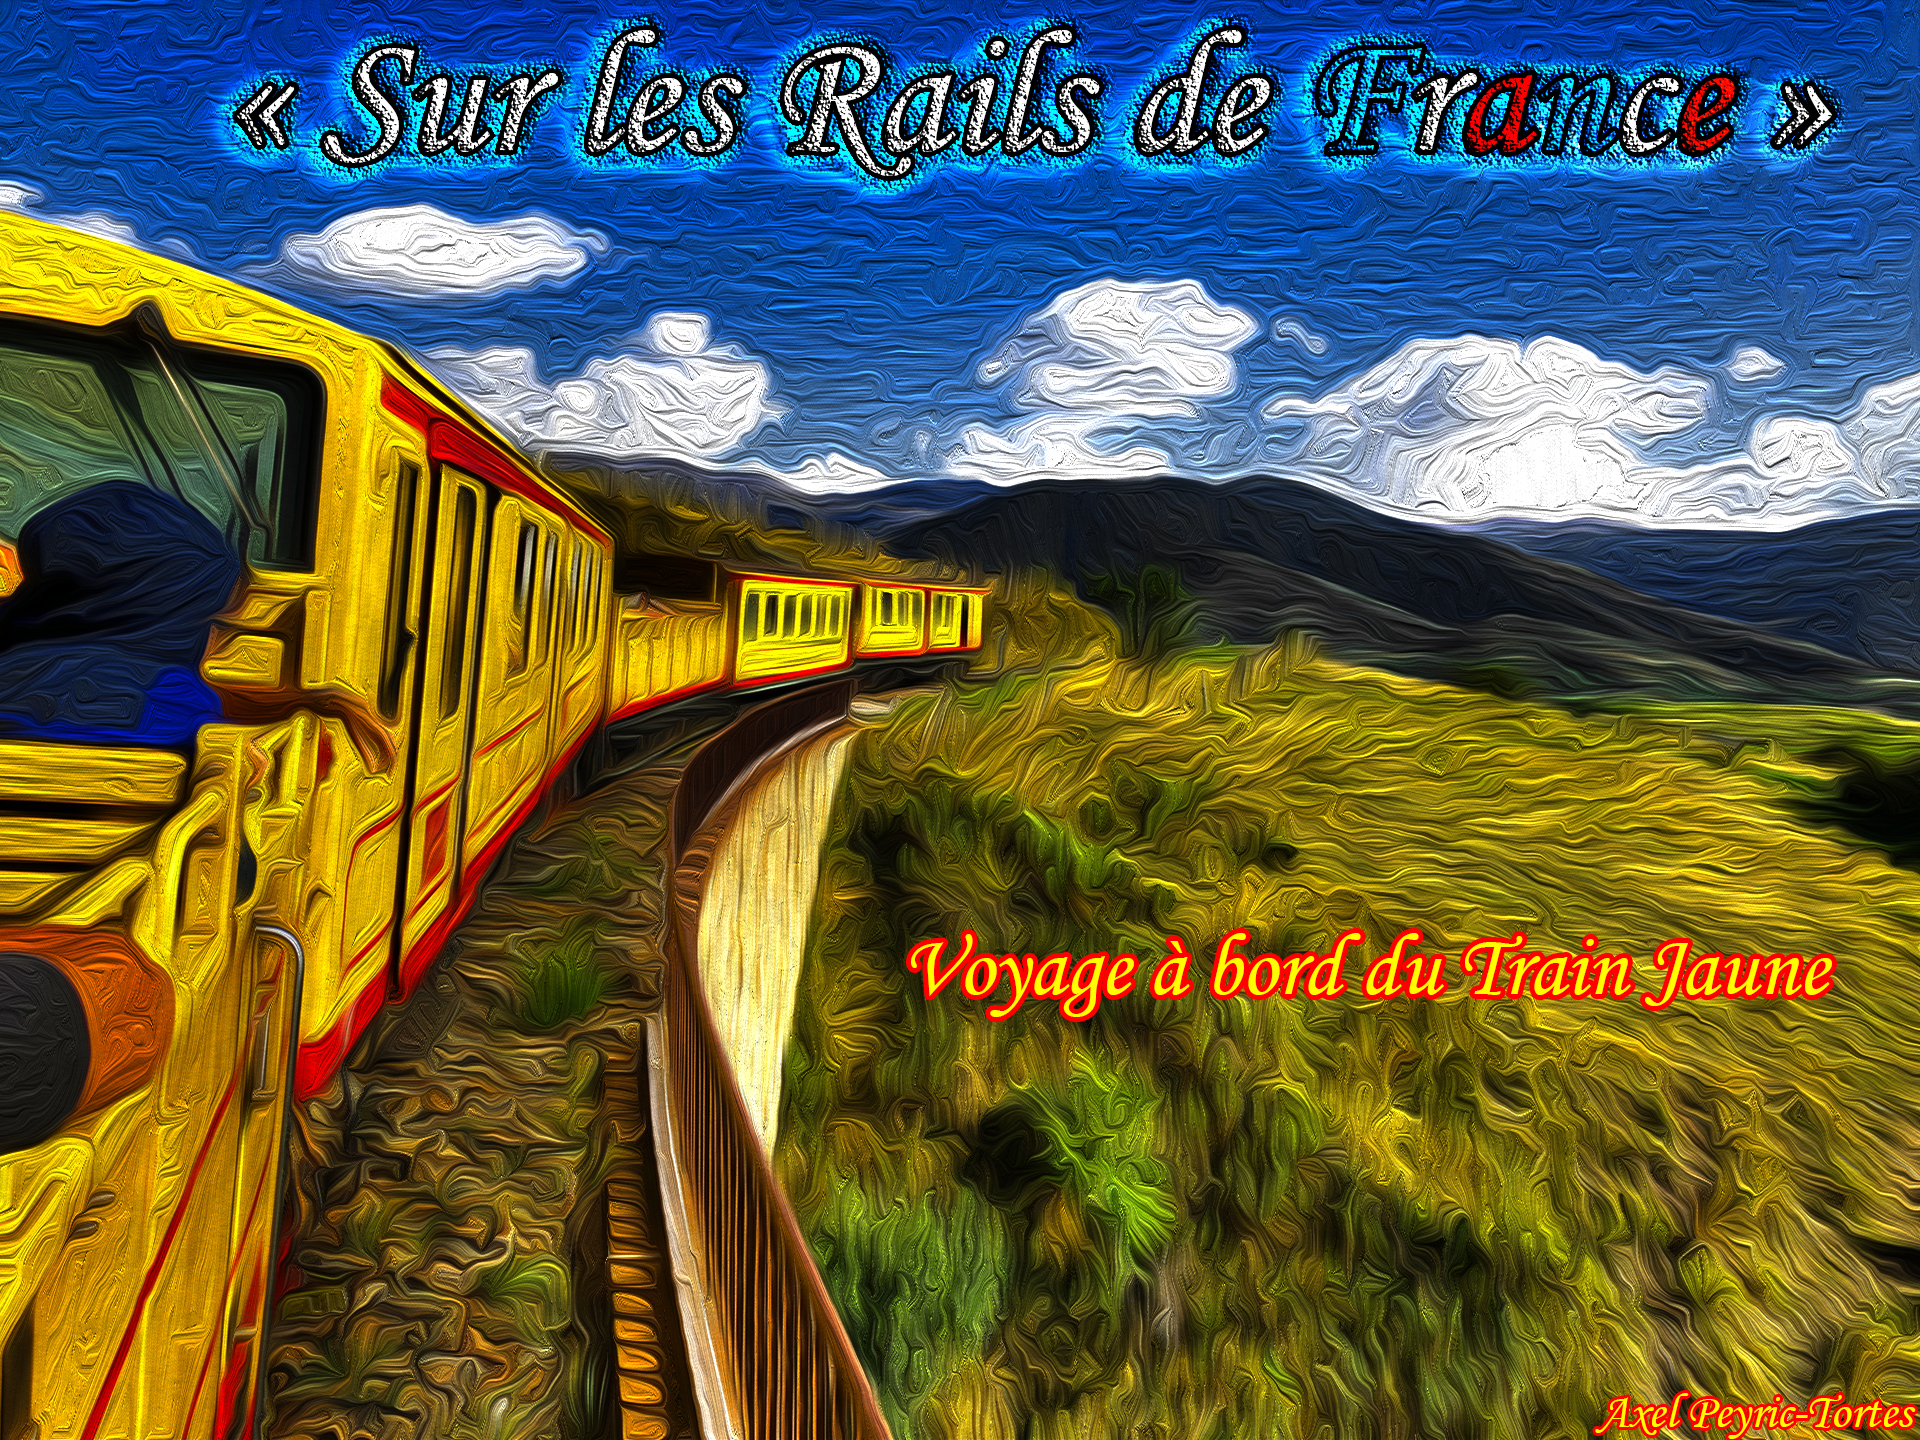 Affiche emission sur les rails de france a bord du train jaune